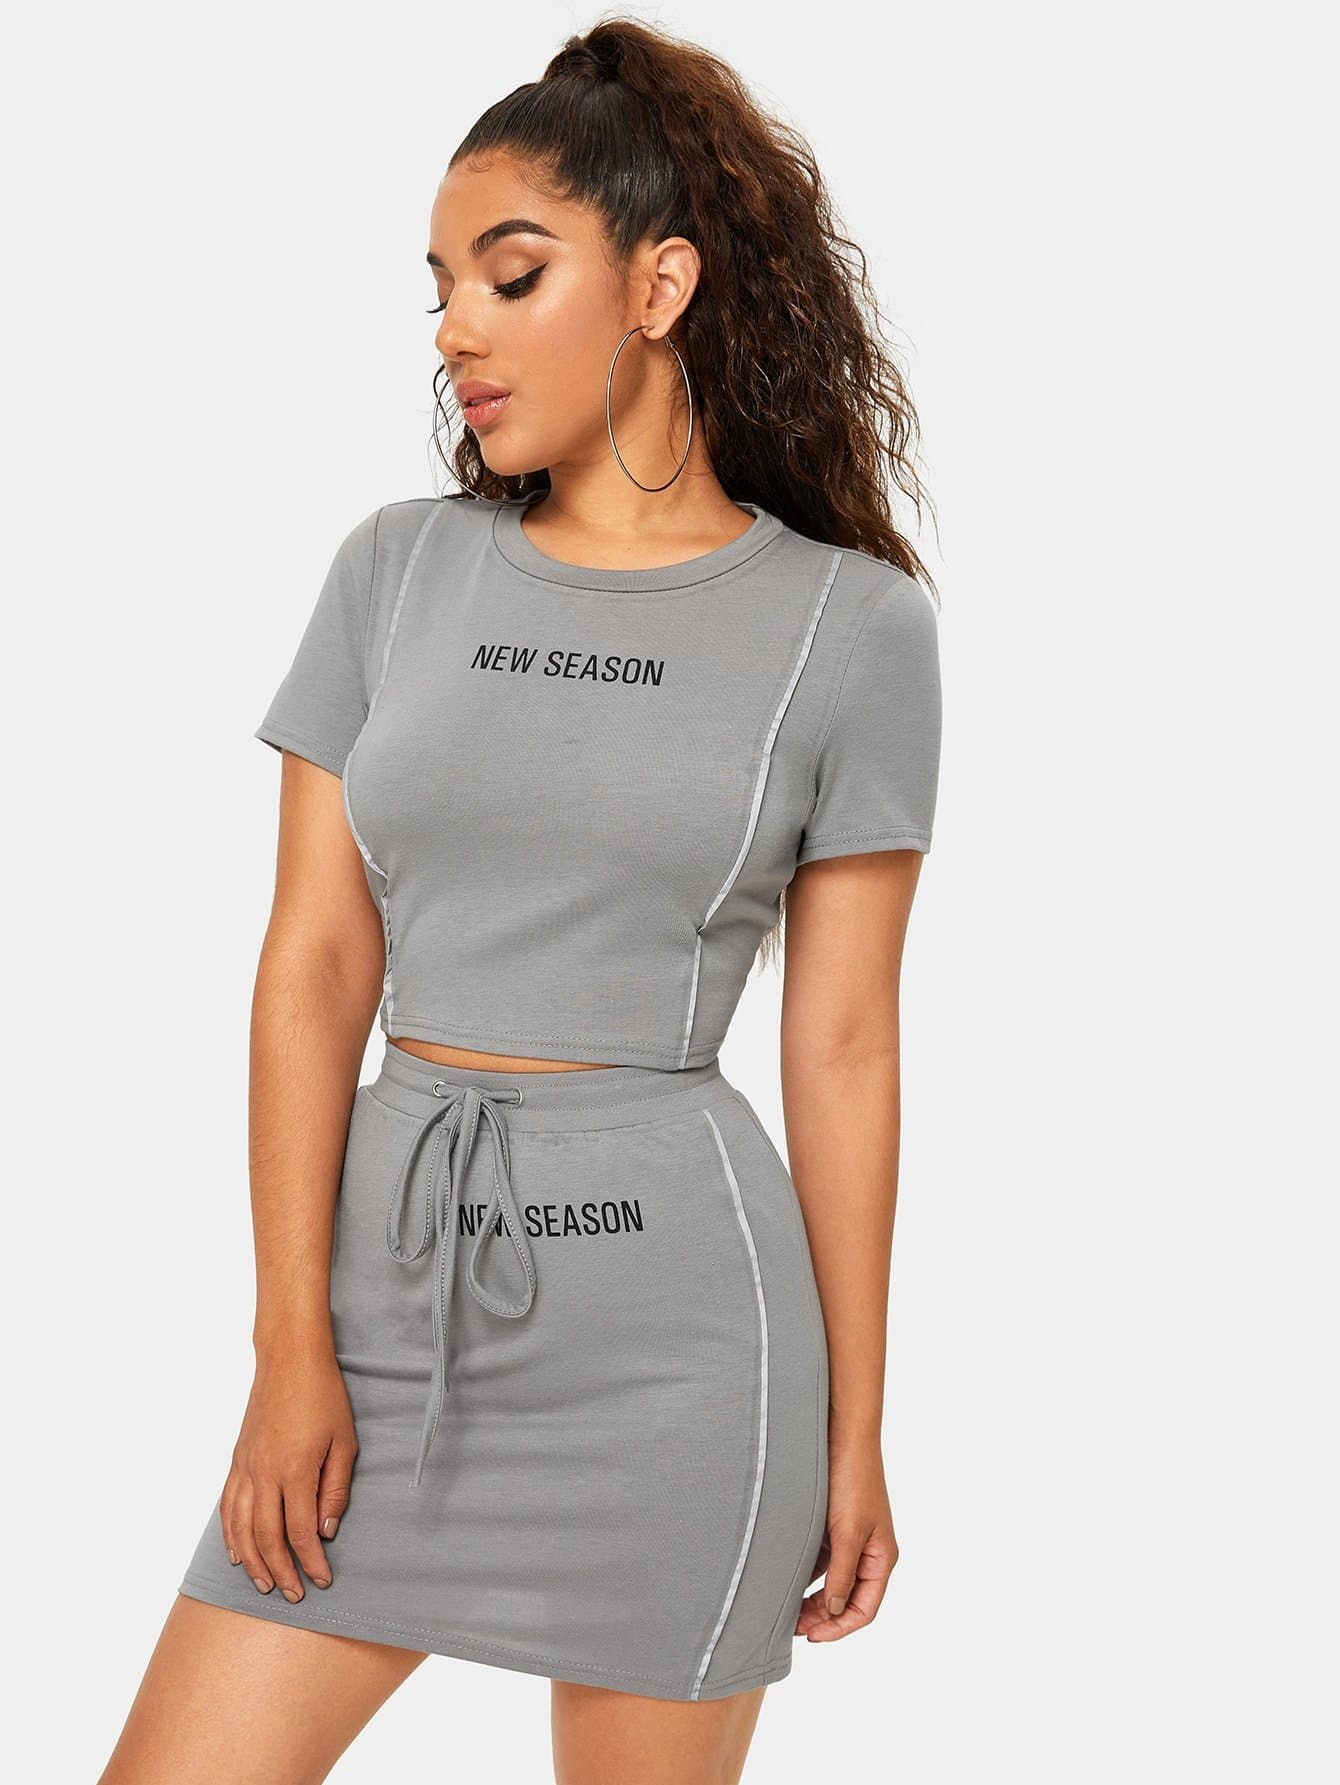 New Season Graphic Tee & Drawstring Mini Skirt Set - FLJ CORPORATIONS